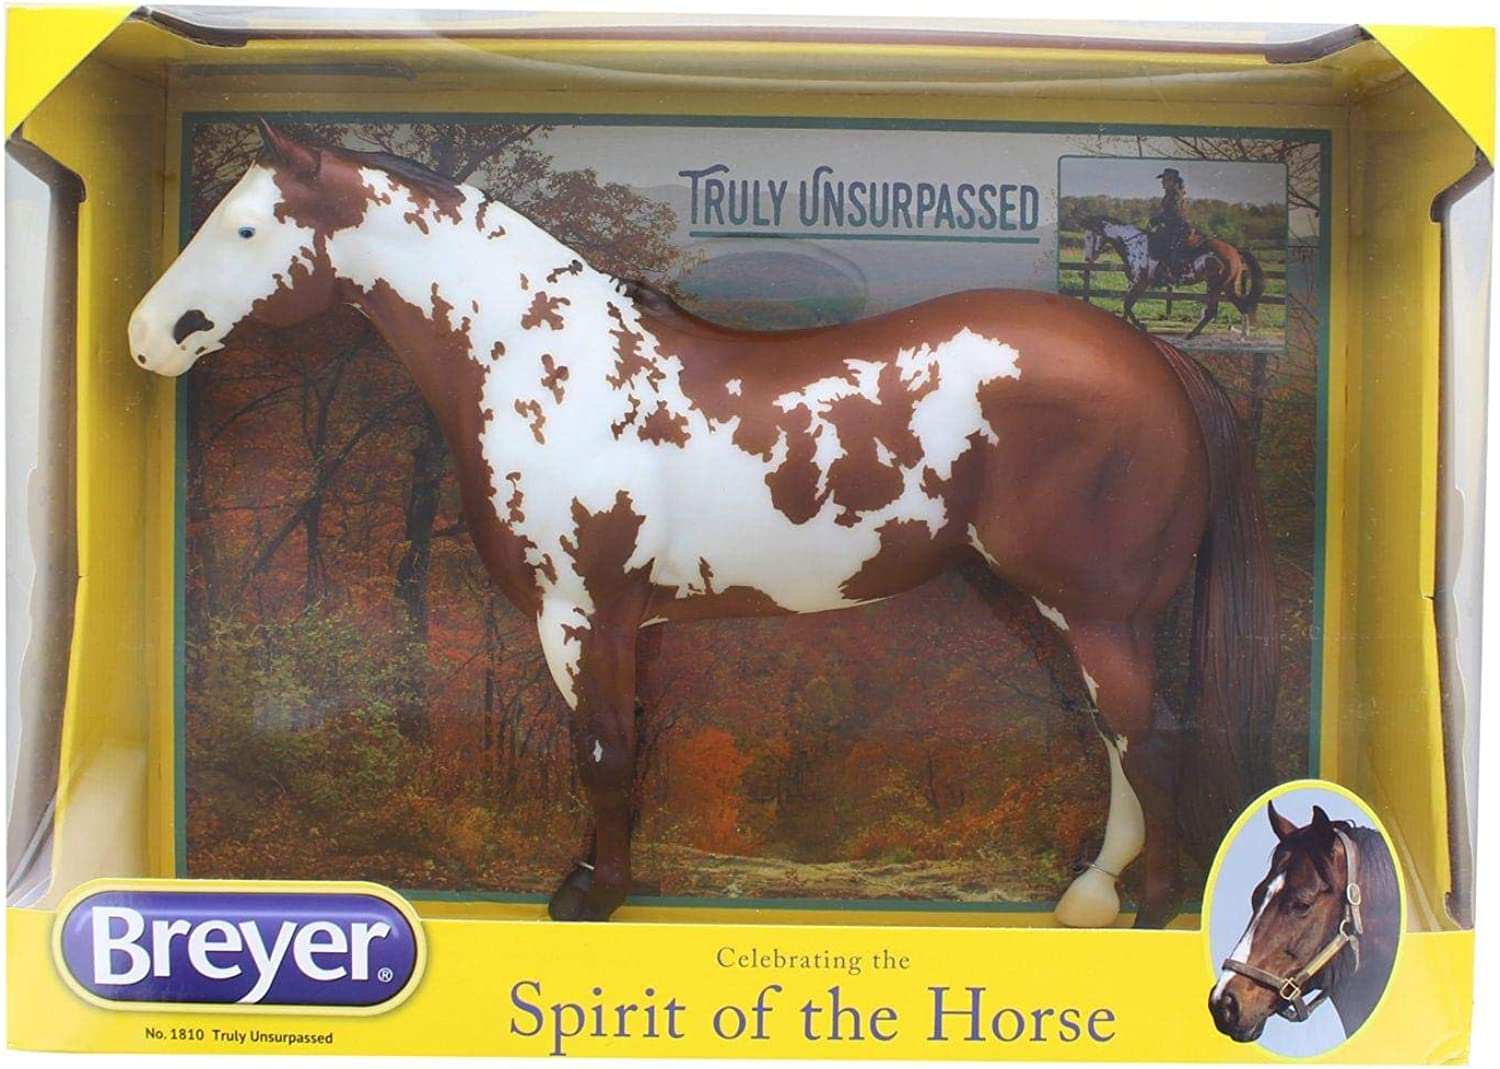 Breyer Traditional 1 9 Model Horse - Truly Unsurpassed